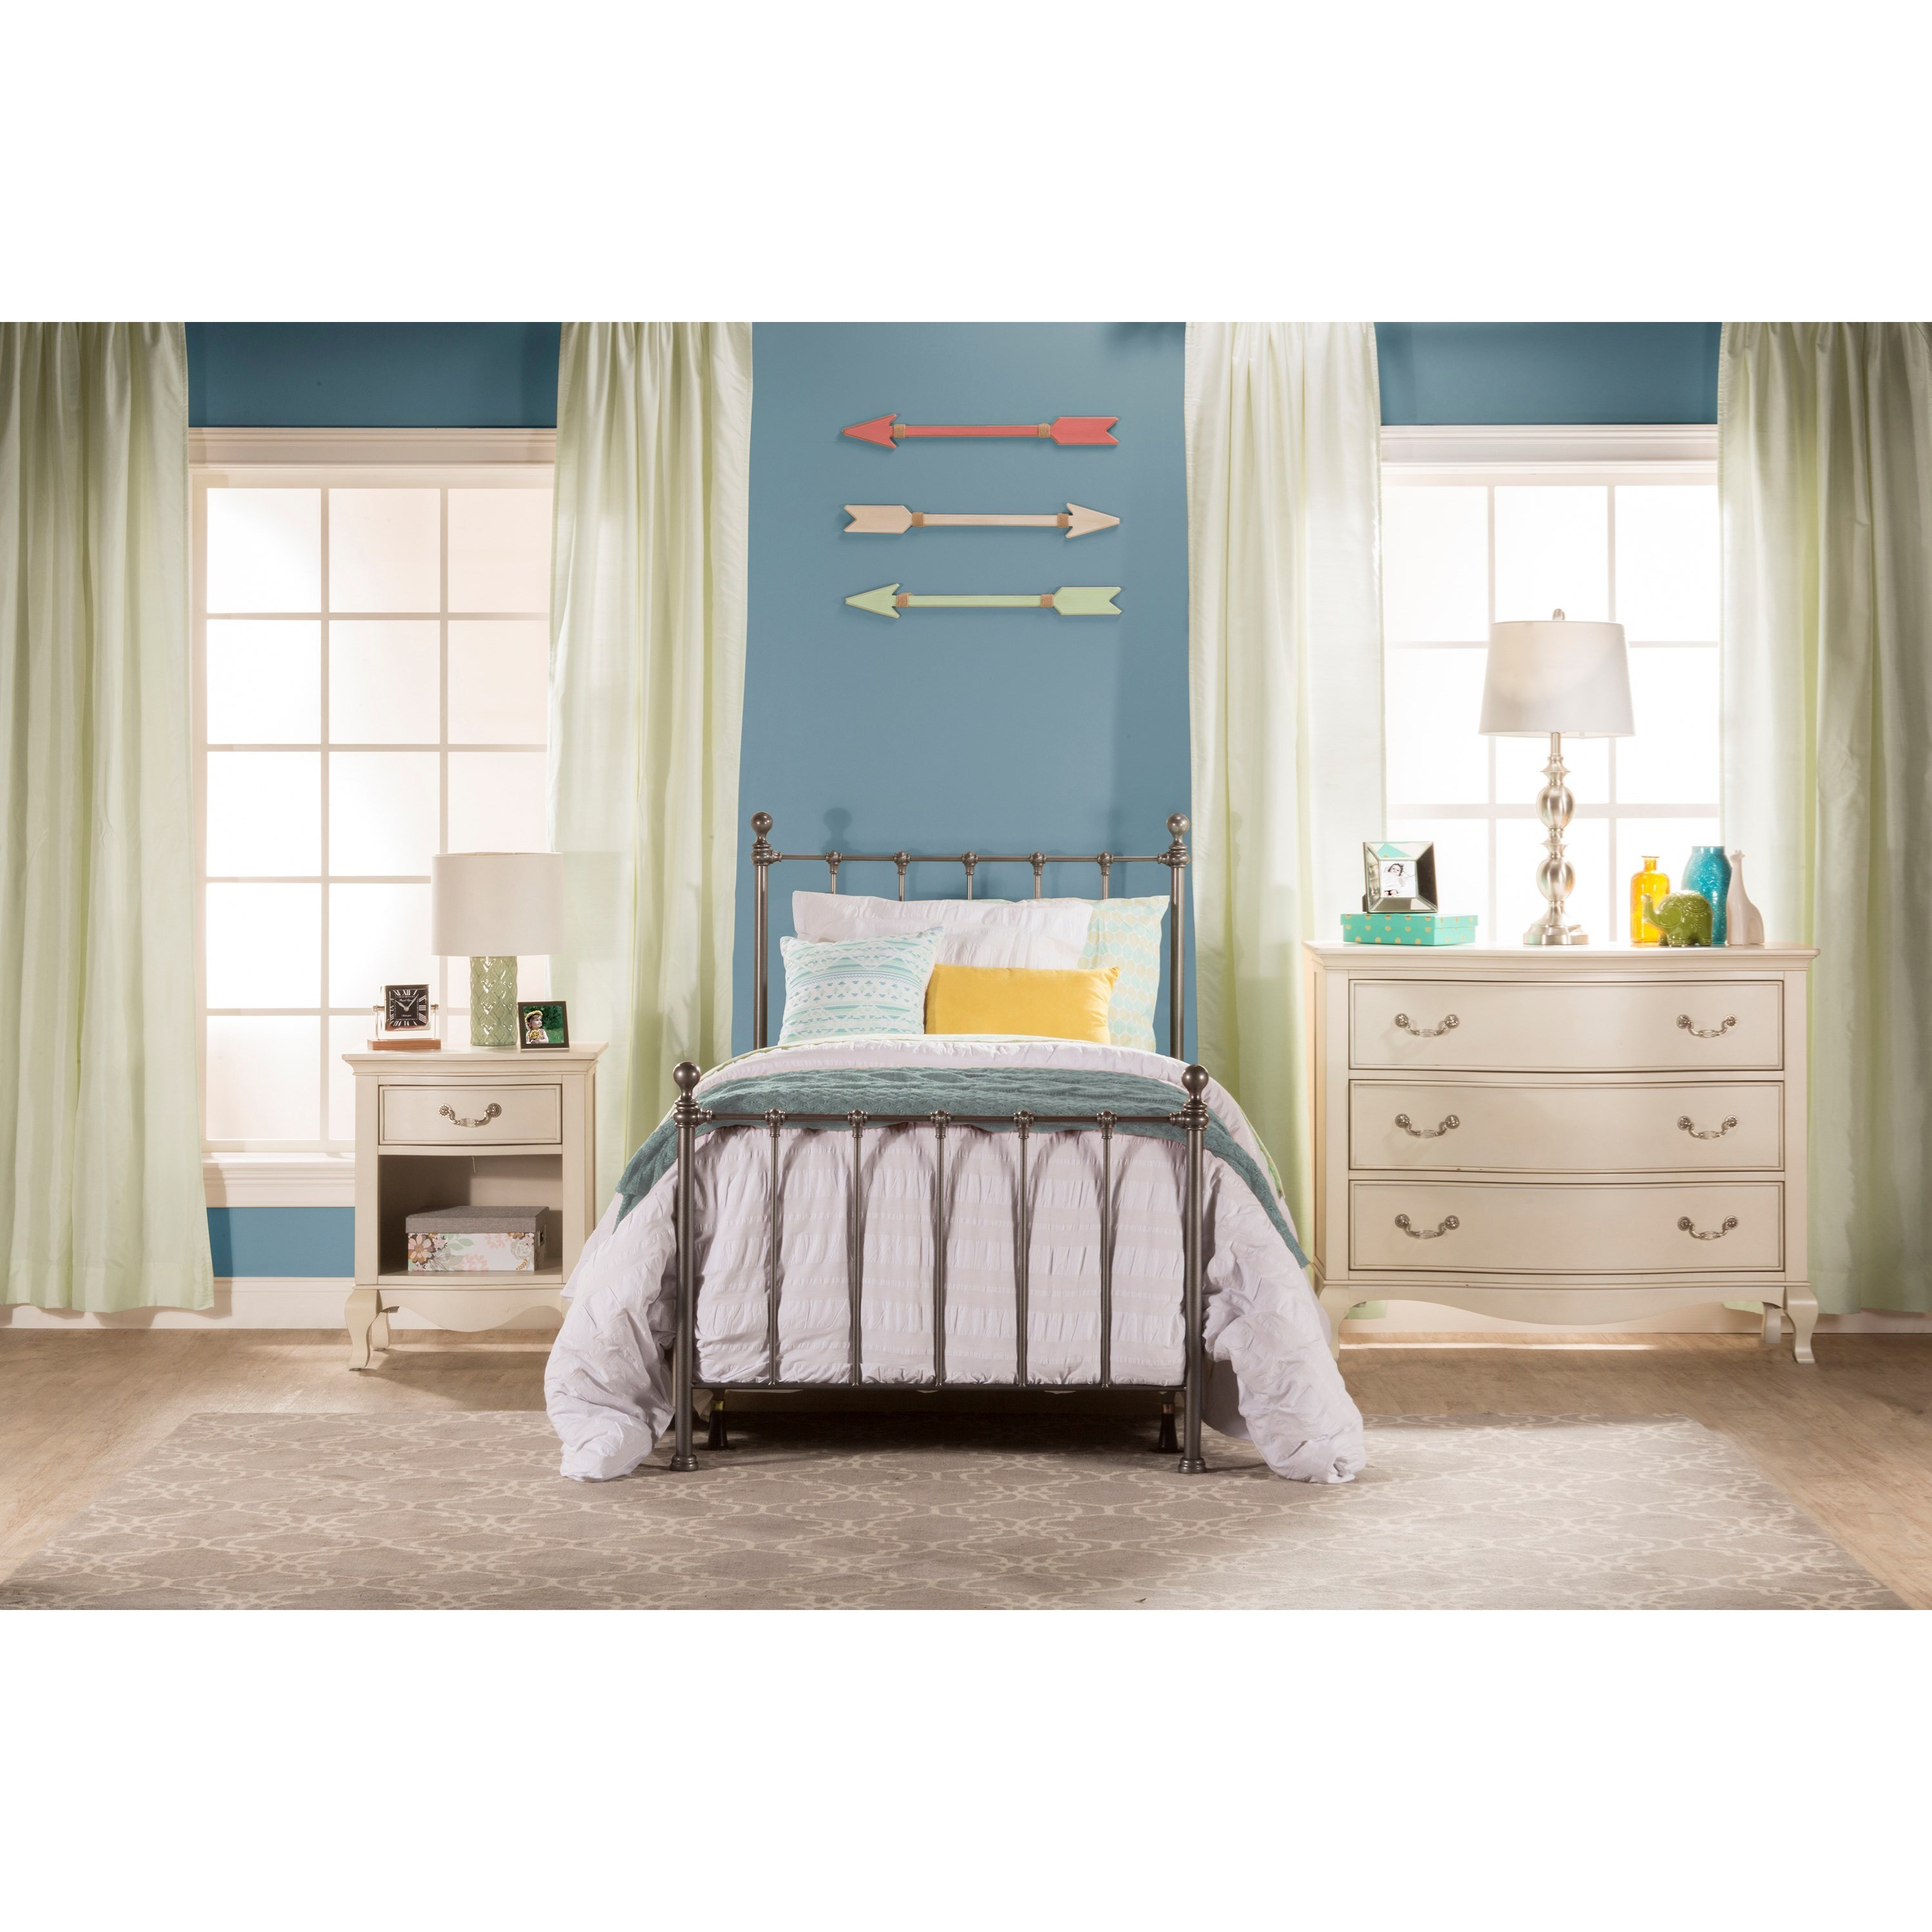 Hillsdale Metal Beds Twin Bed Set - Bed Frame Not Included ...